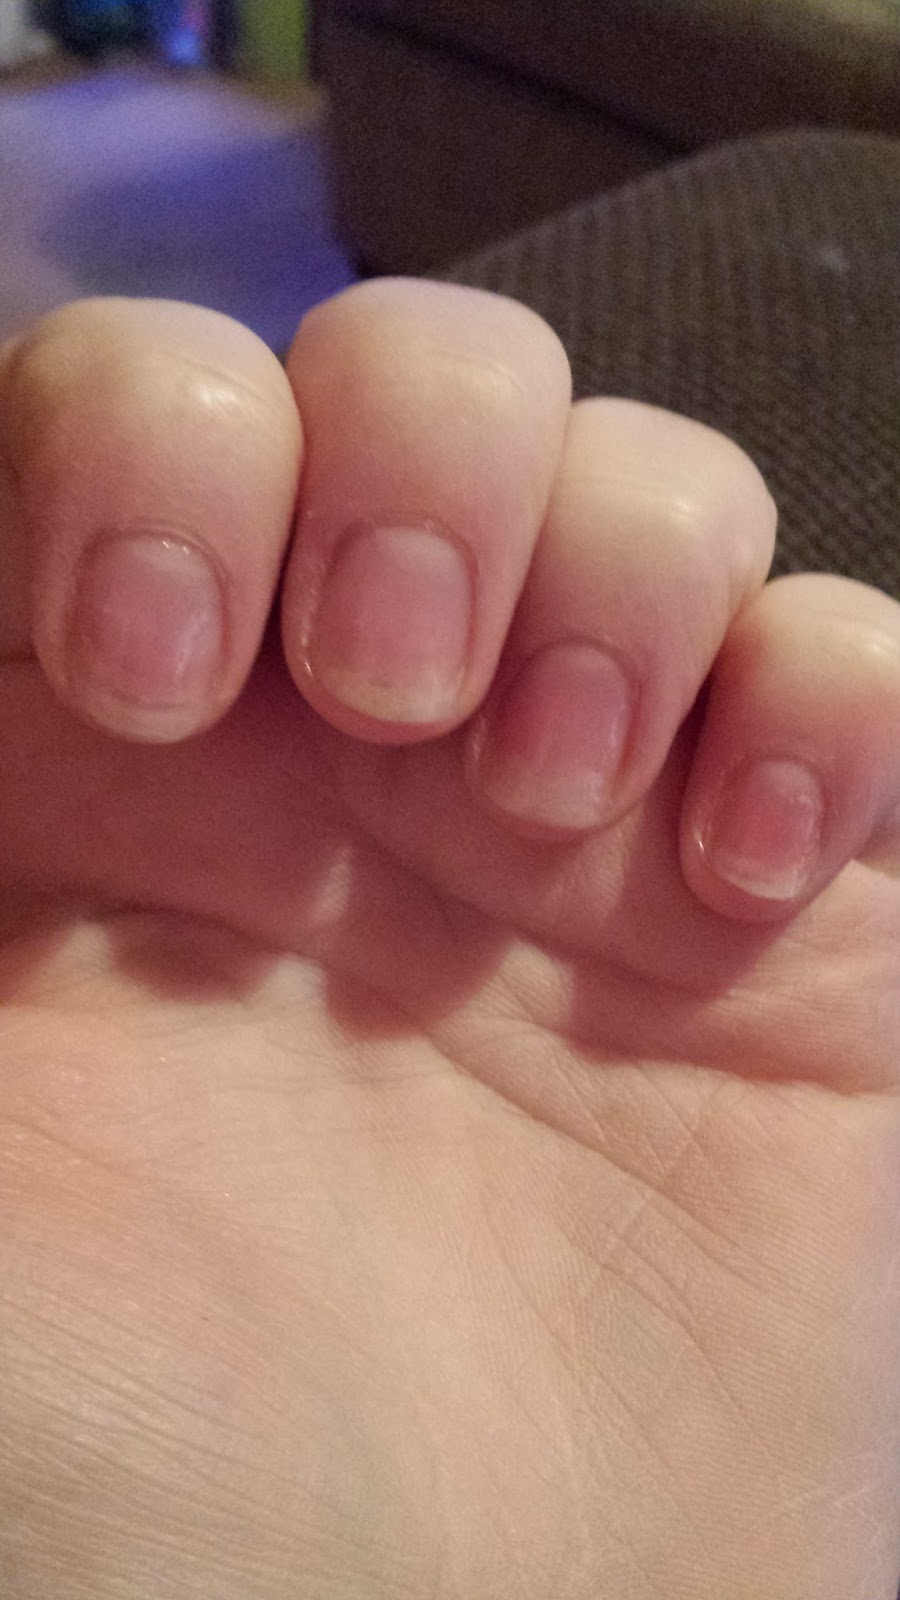 Essence ultra strong nail hardener rachsbeautique this nail polish strengthens and builds up soft and brittle nails it also says it contains formaldehyde and to see the warnings the warnings are actually solutioingenieria Images